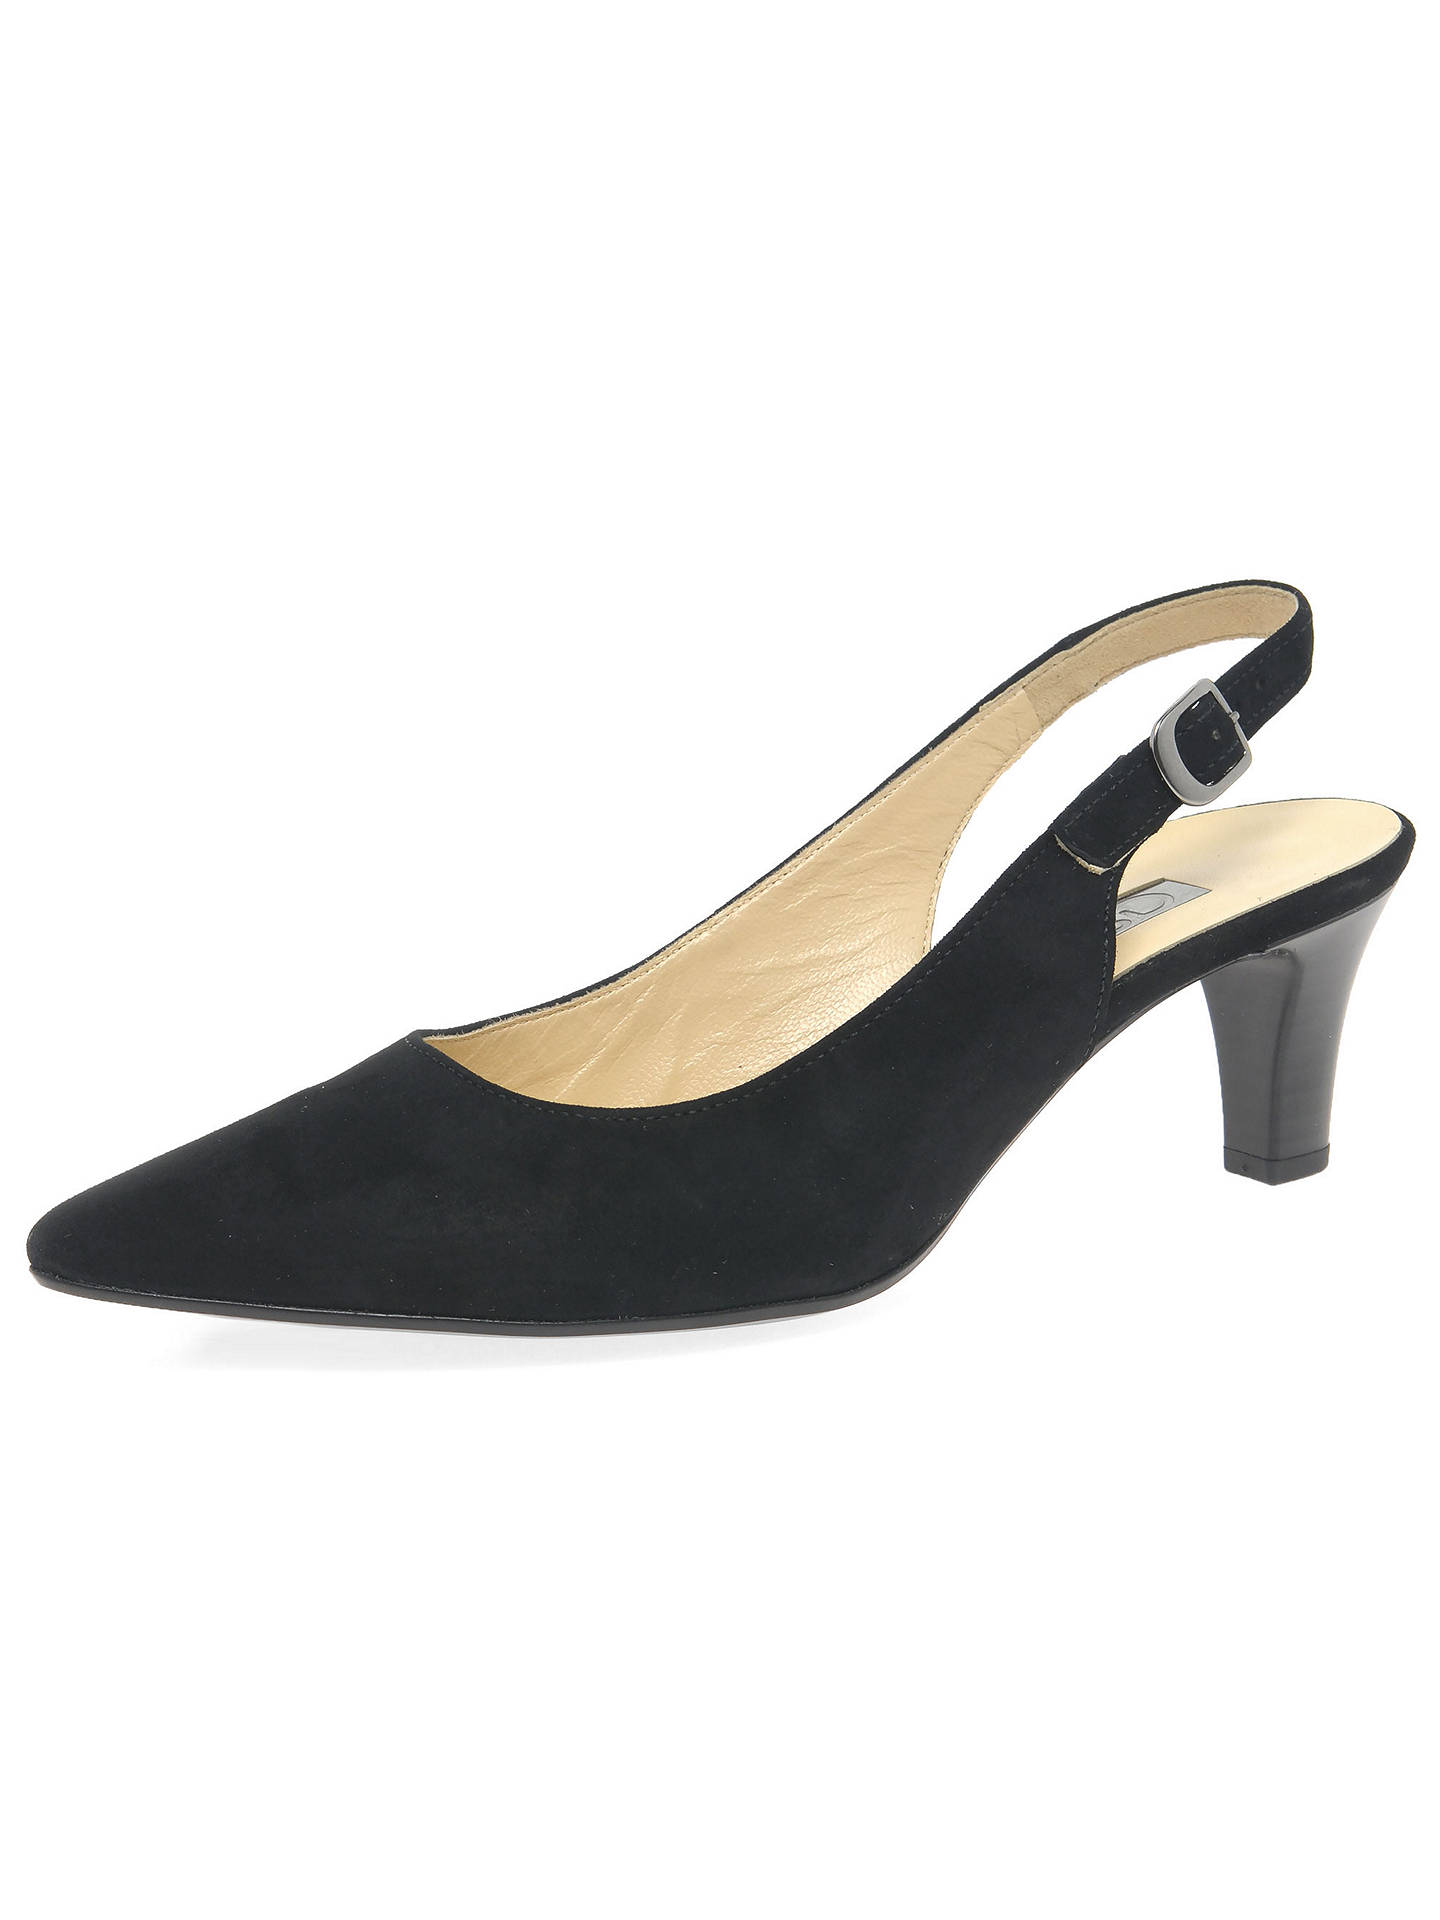 c353970aeb4 Gabor Hume 2 Slingback Court Shoes at John Lewis   Partners